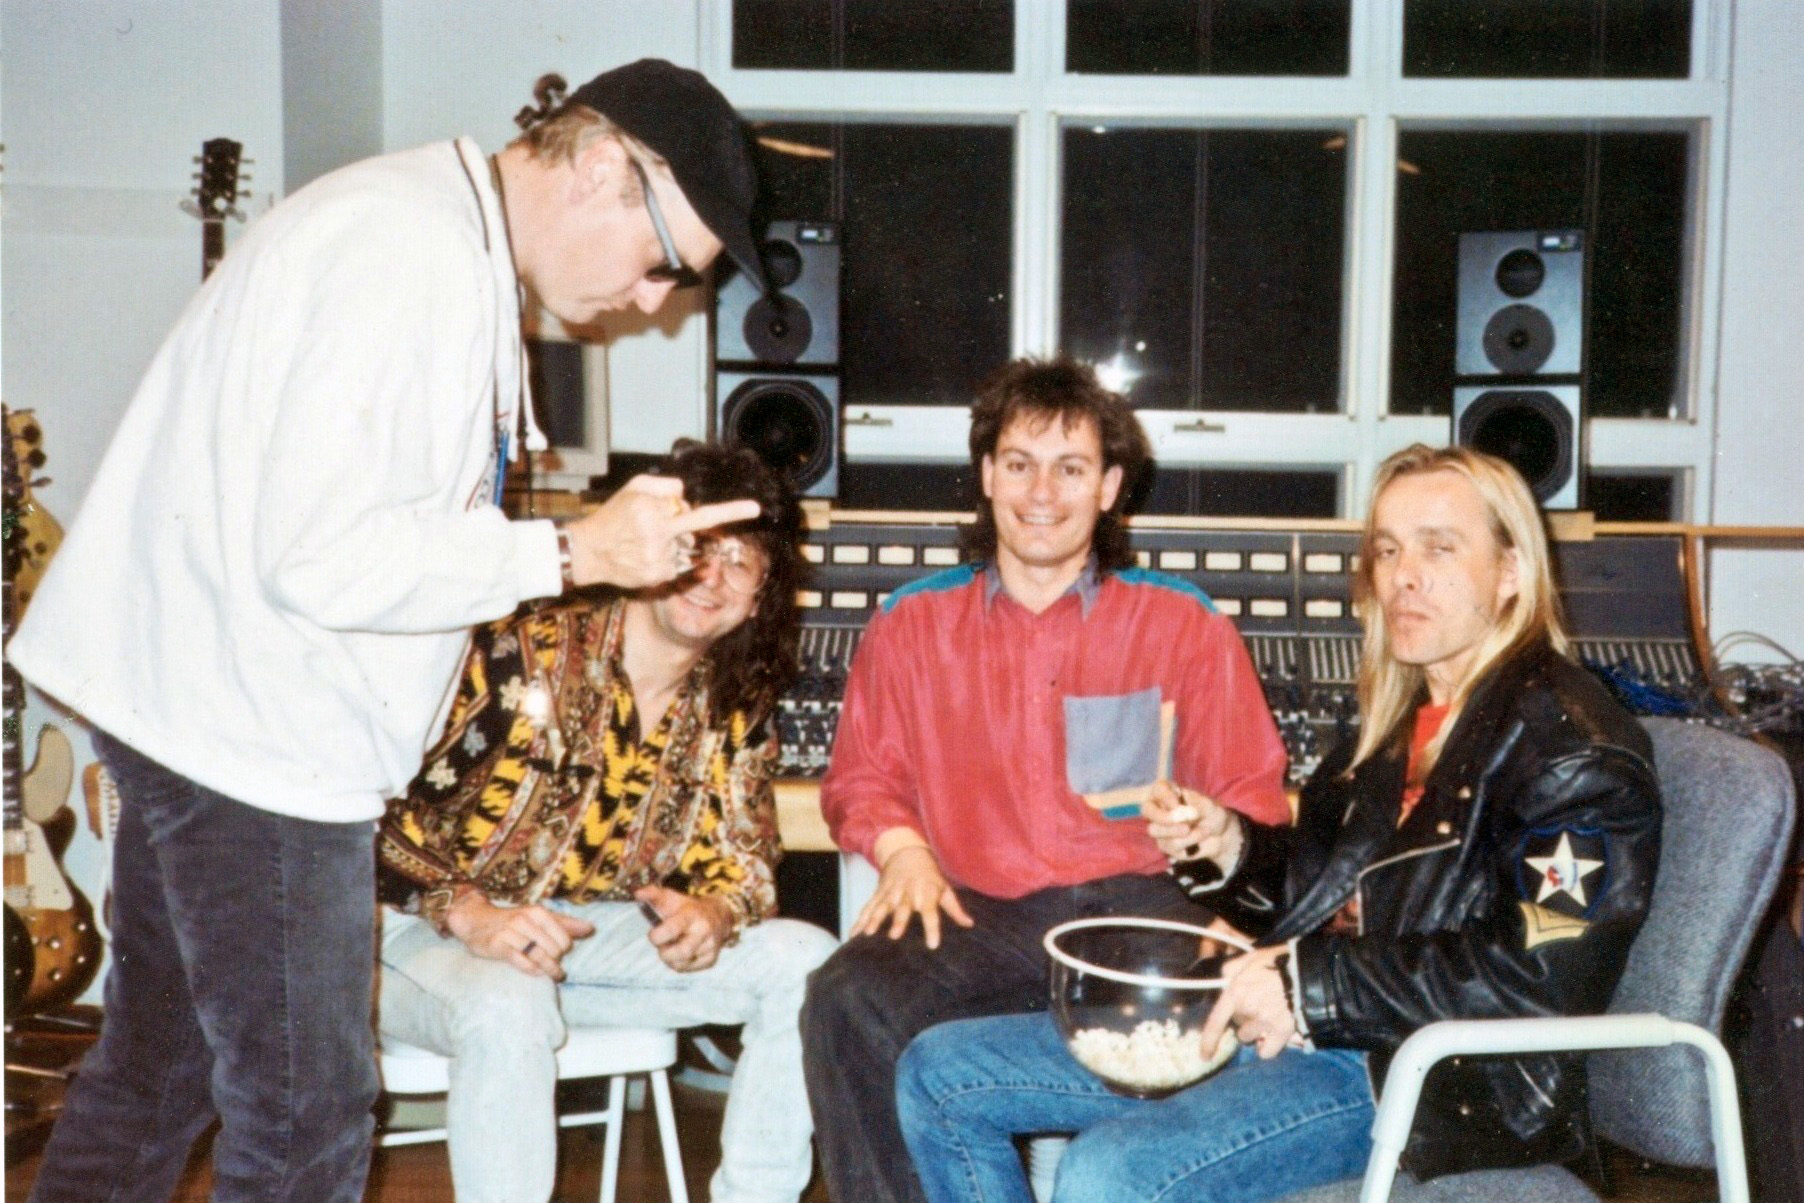 With Cheap Trick